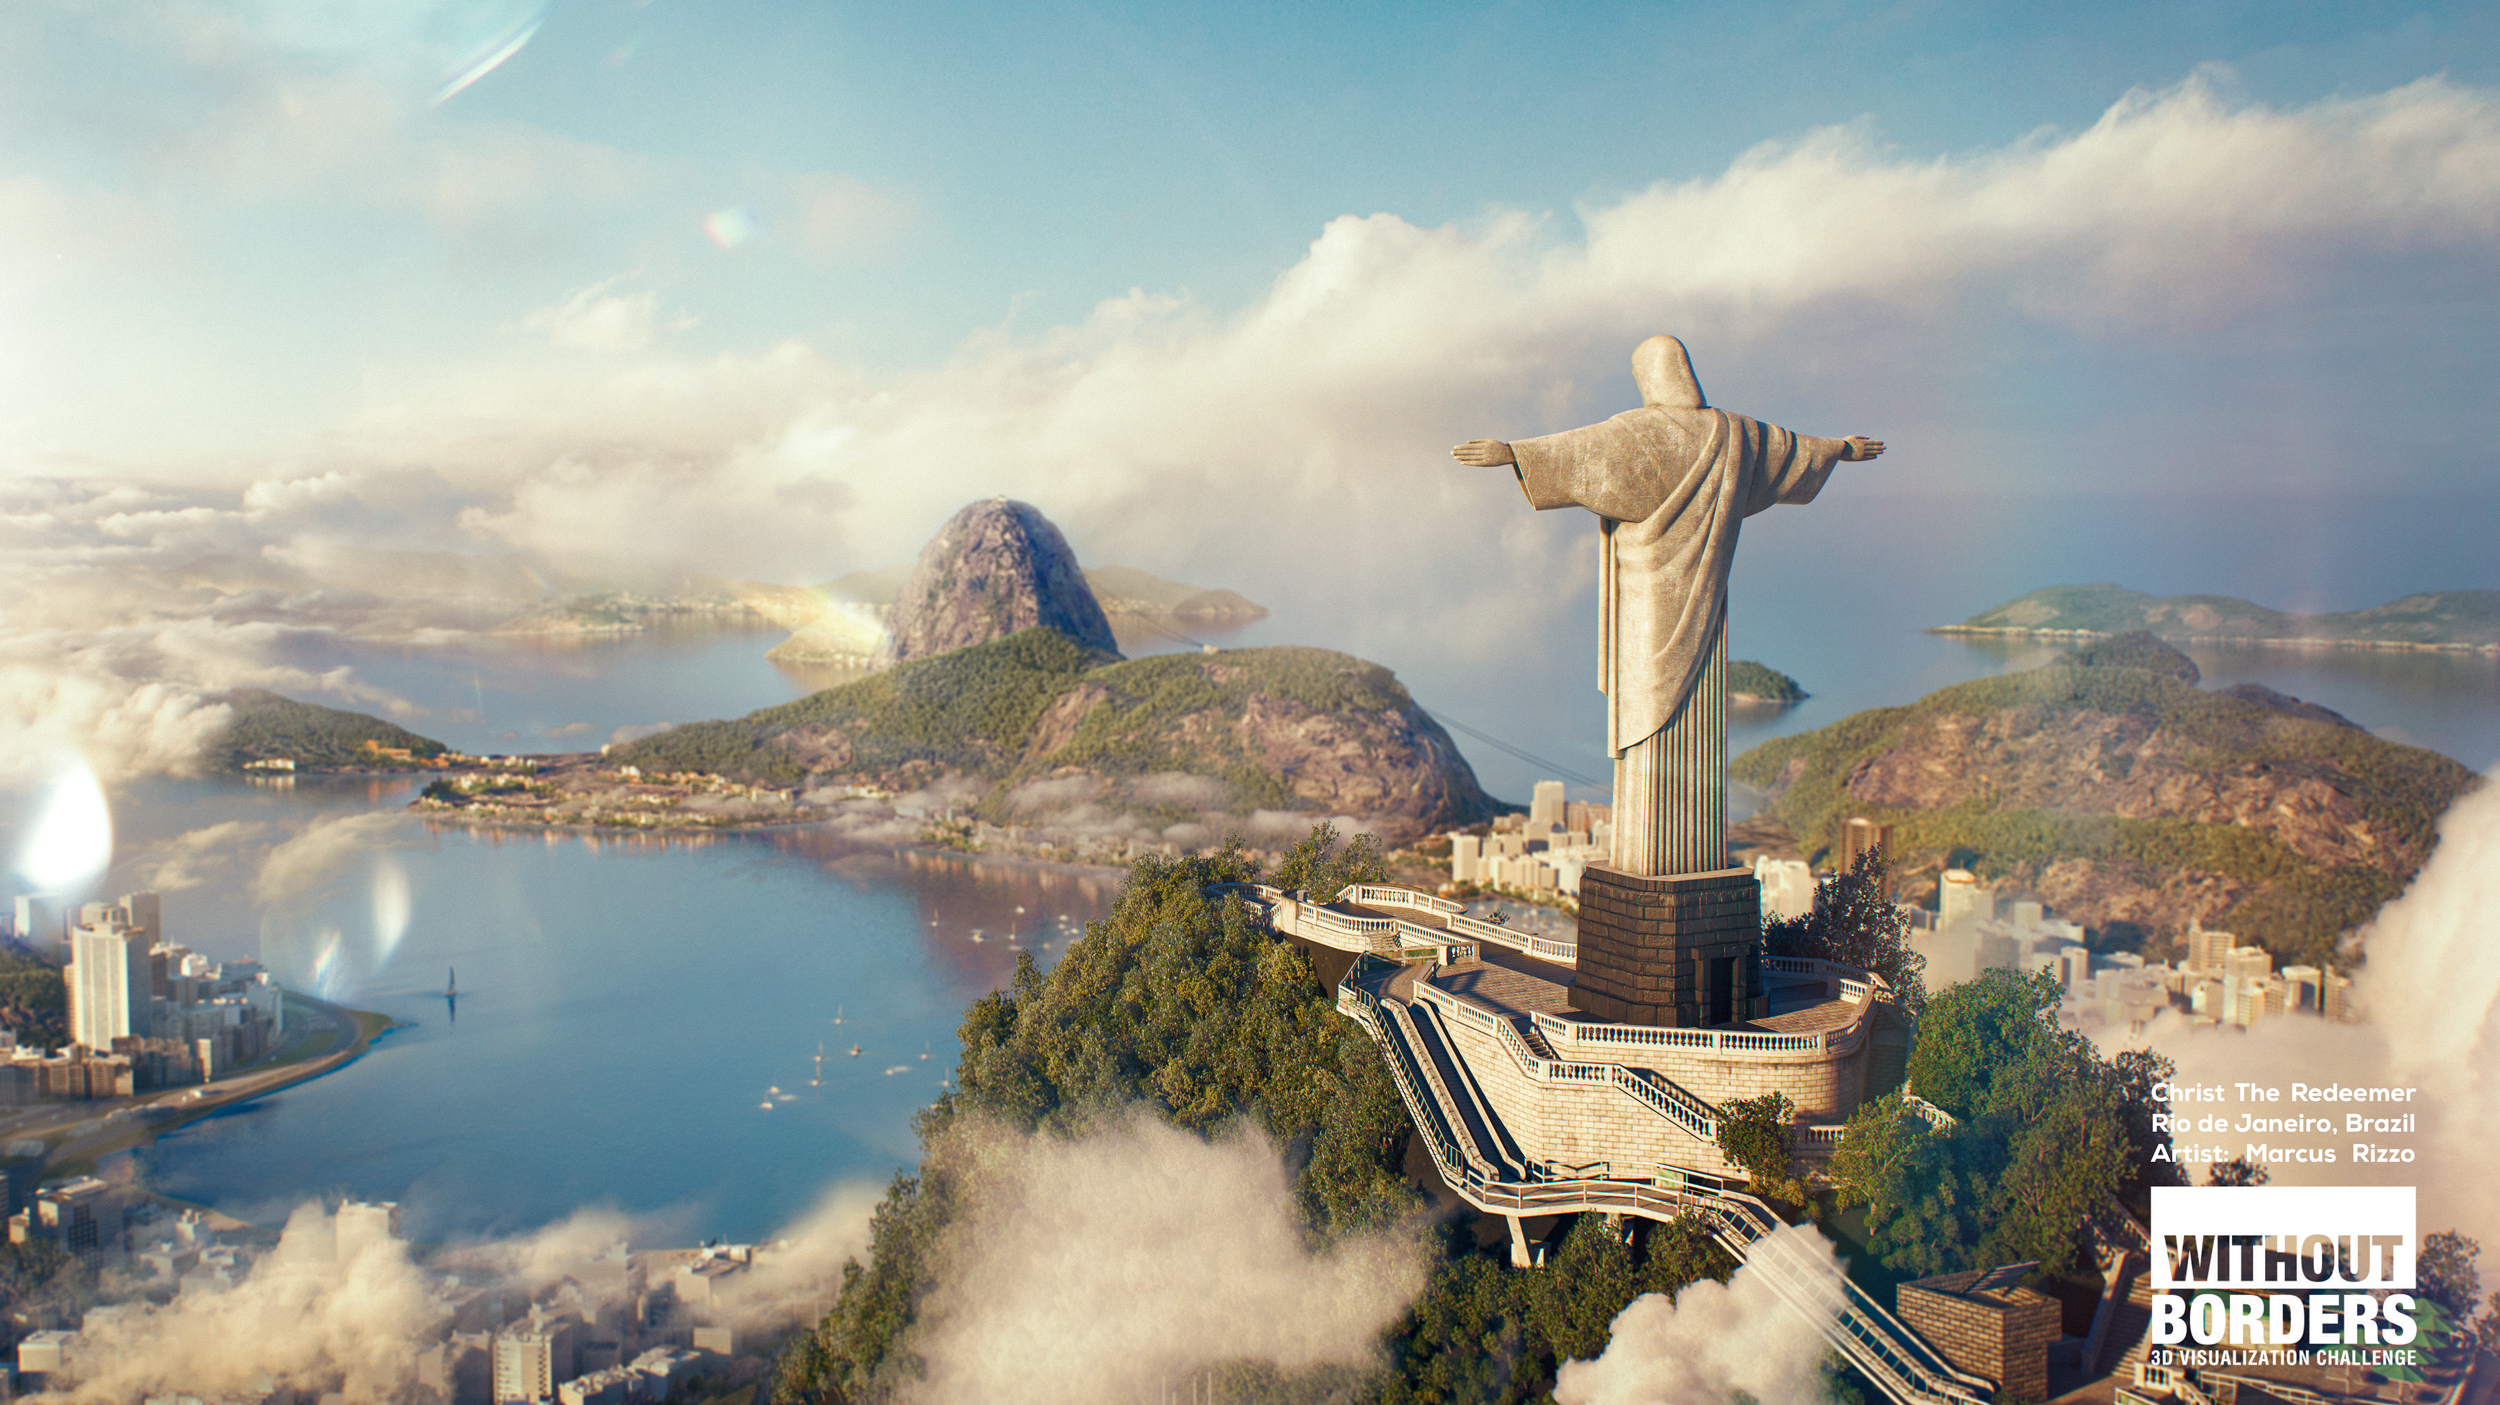 Christ The Redeemer by Marcus Rizzo